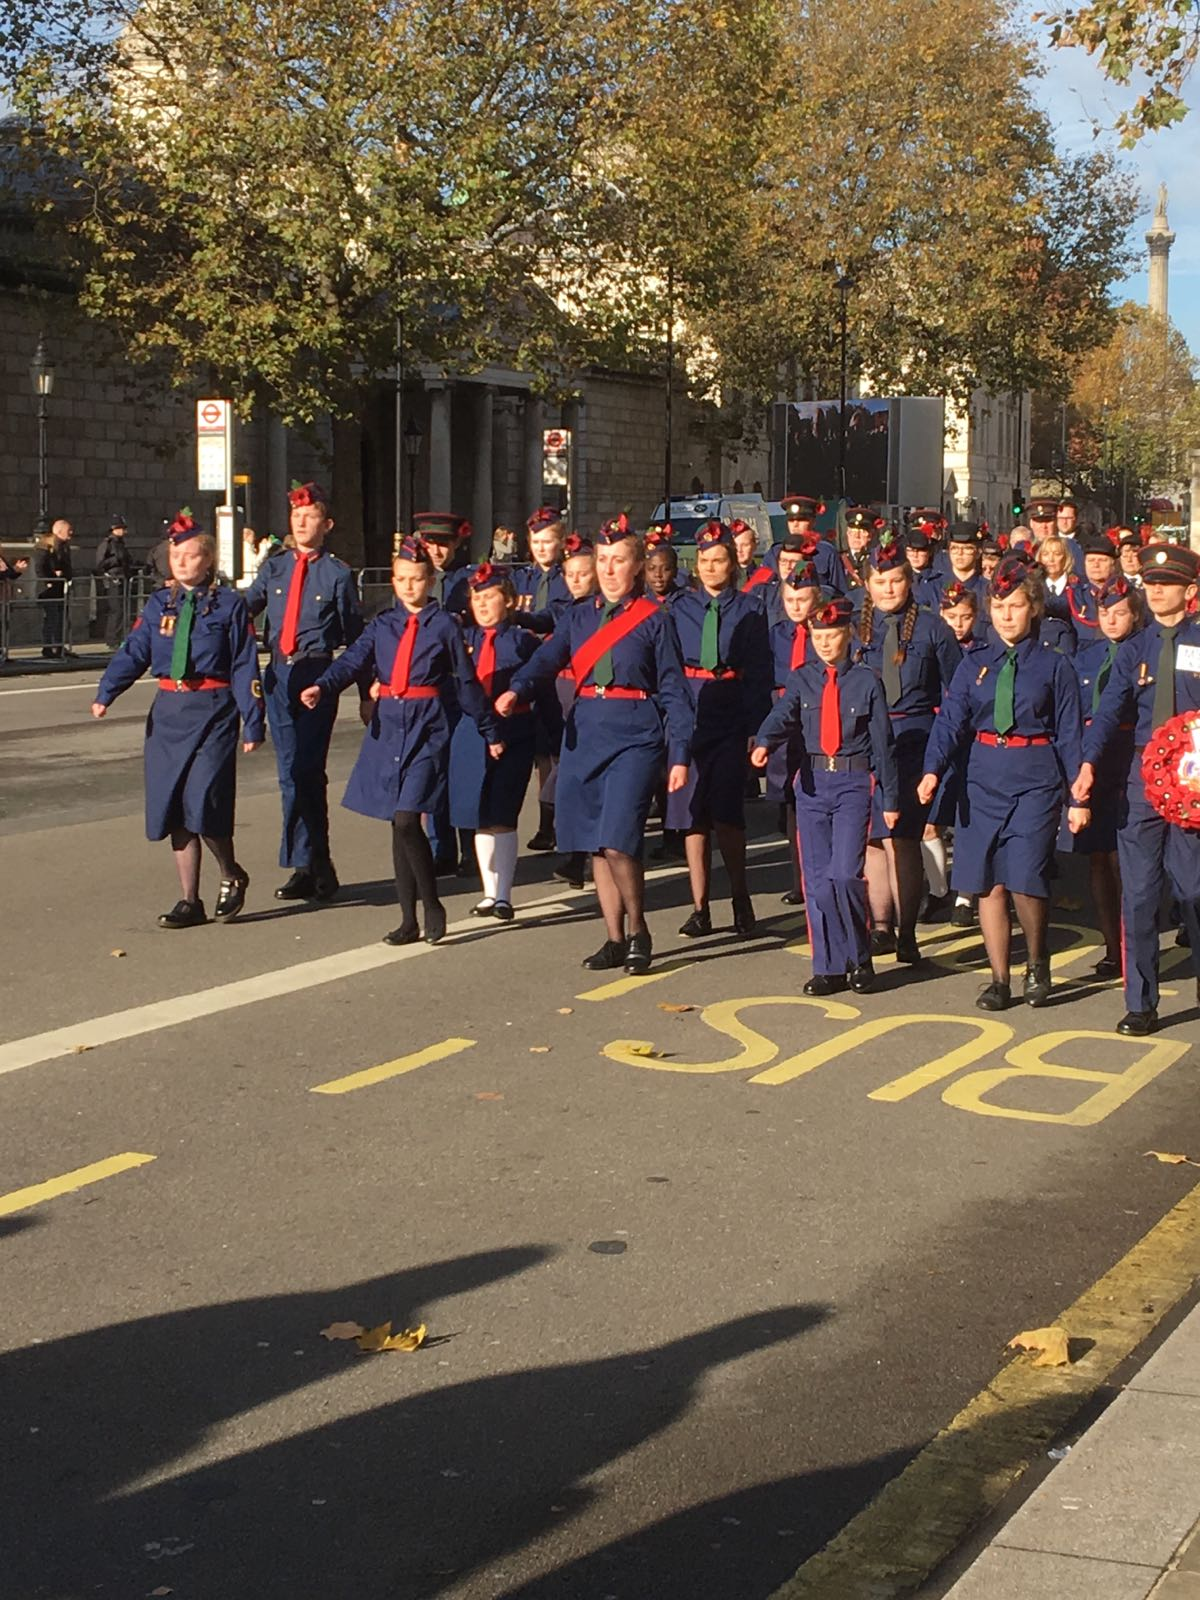 Remembrance Service at the Cenotaph with St James Alperton